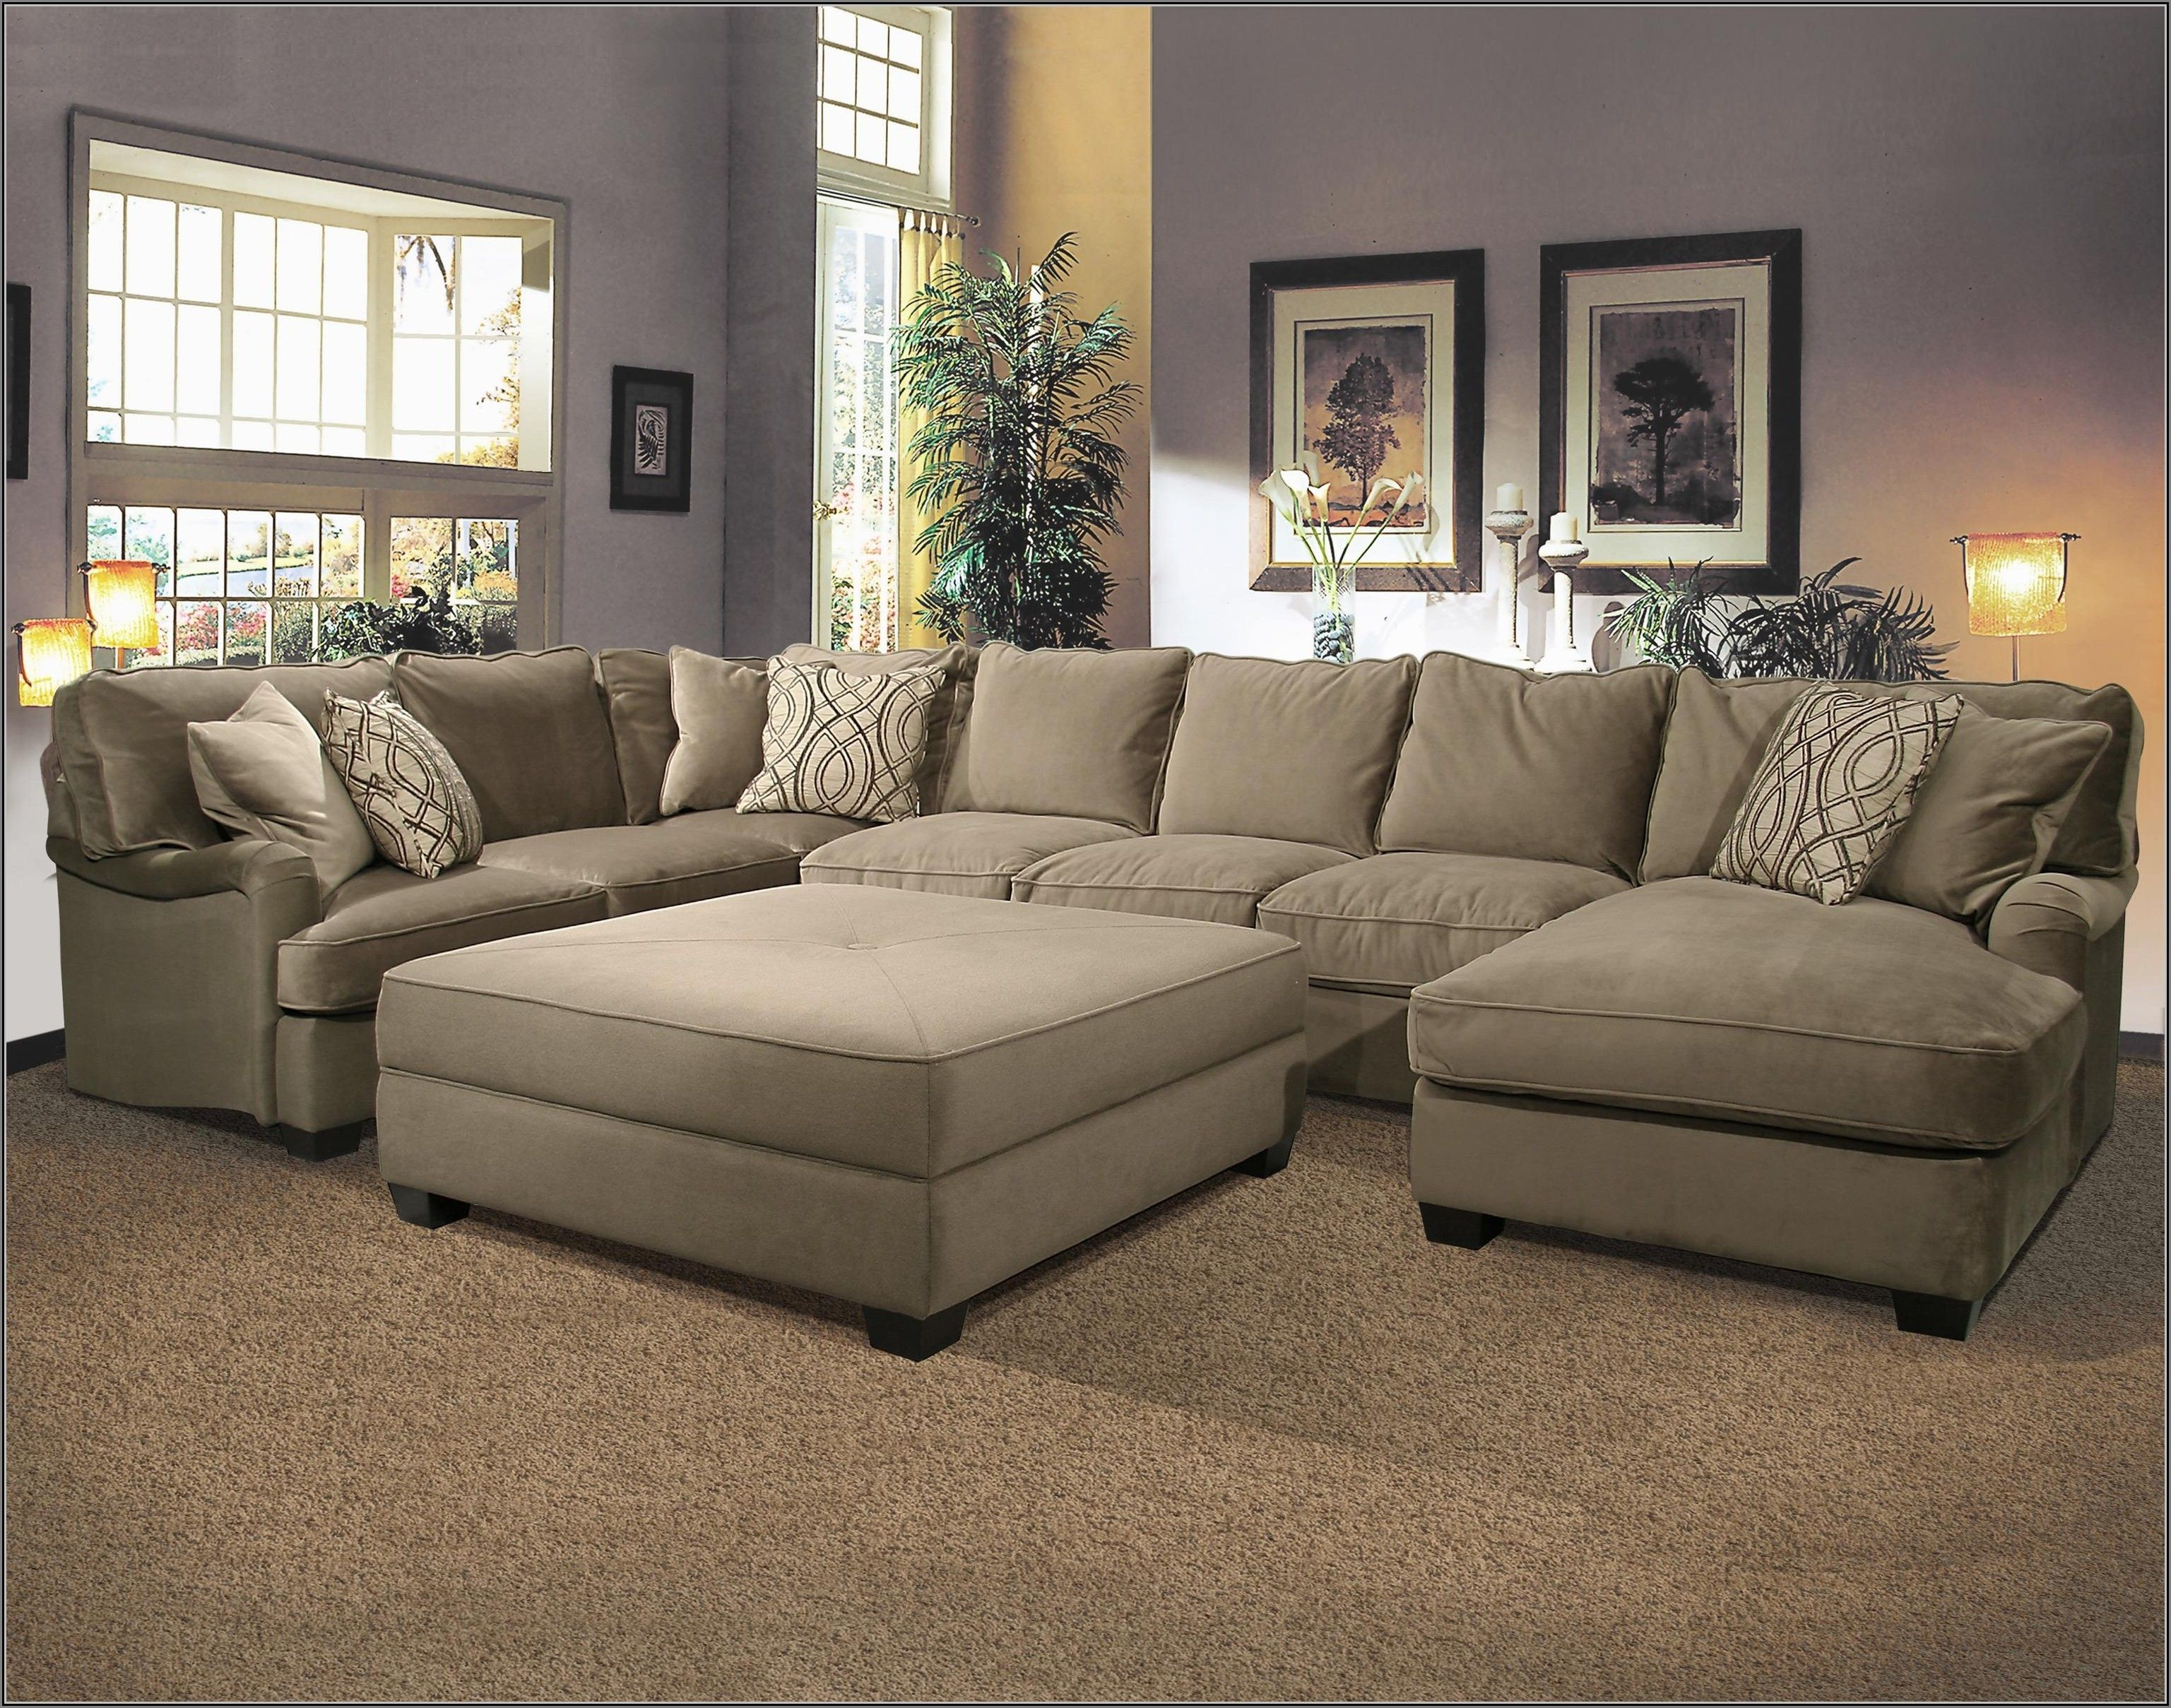 10 Top Couches With Large Ottoman Sofa Ideas Large Sectional